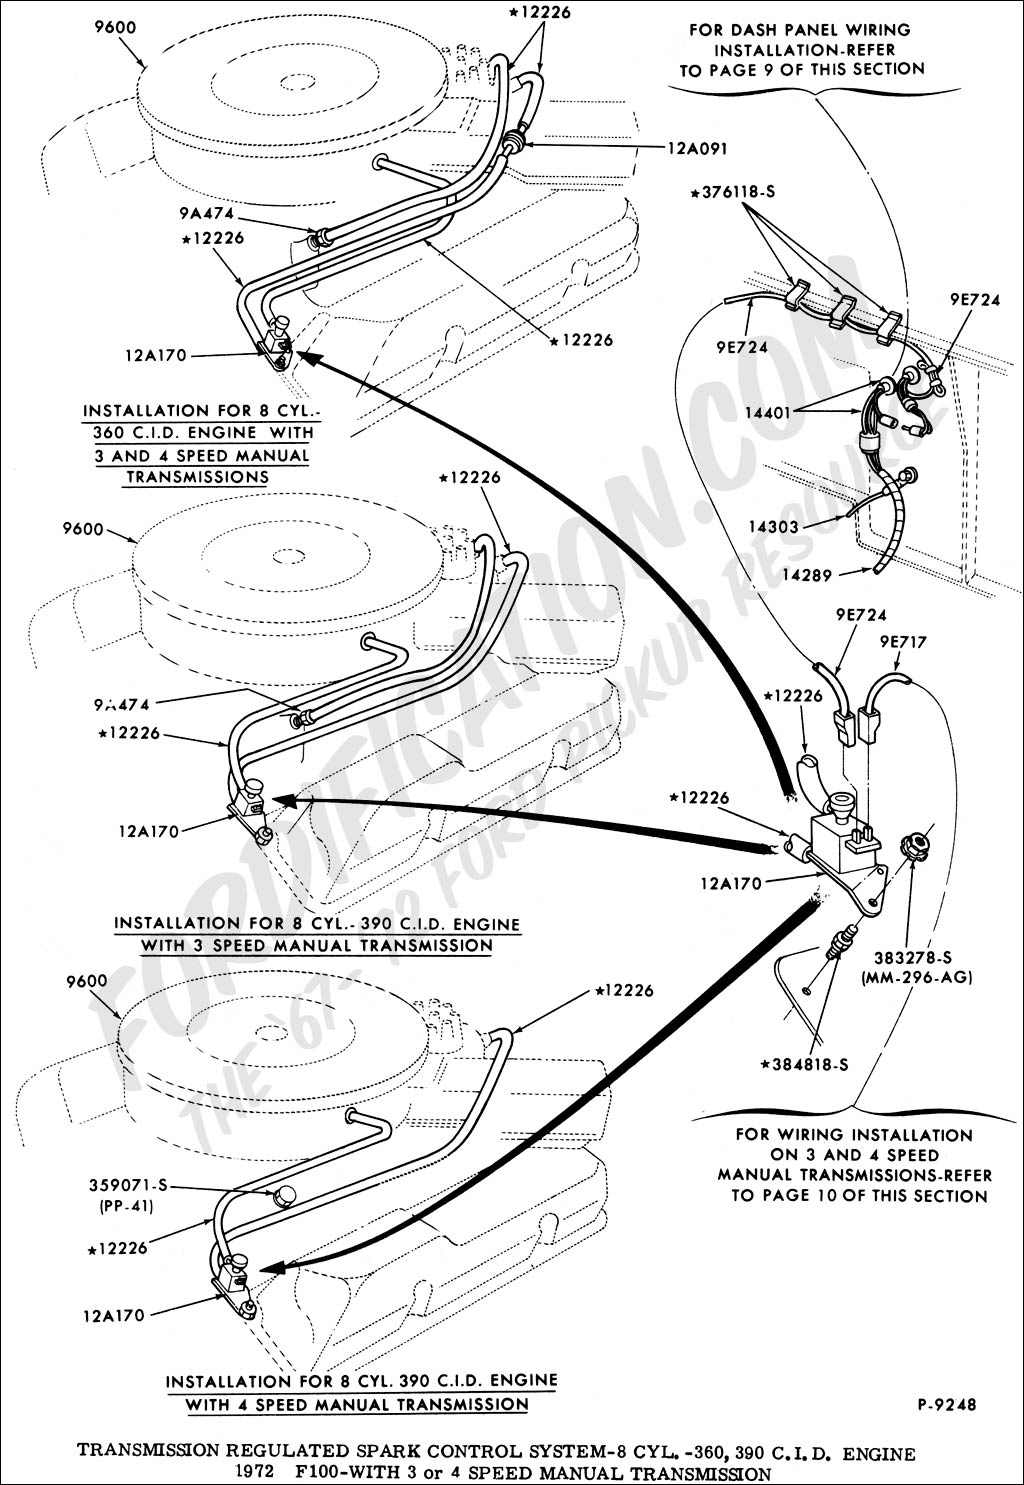 1292492 85 Steering Column Wiring Diagram together with 1966 Chevy Corvette Fuse Box Diagram also Engine and jet drive likewise T16100399 Ford f150 1977 turn signal wiring moreover Subaru 2 0 Engine Diagram. on wiring diagram for 1977 ford f 150